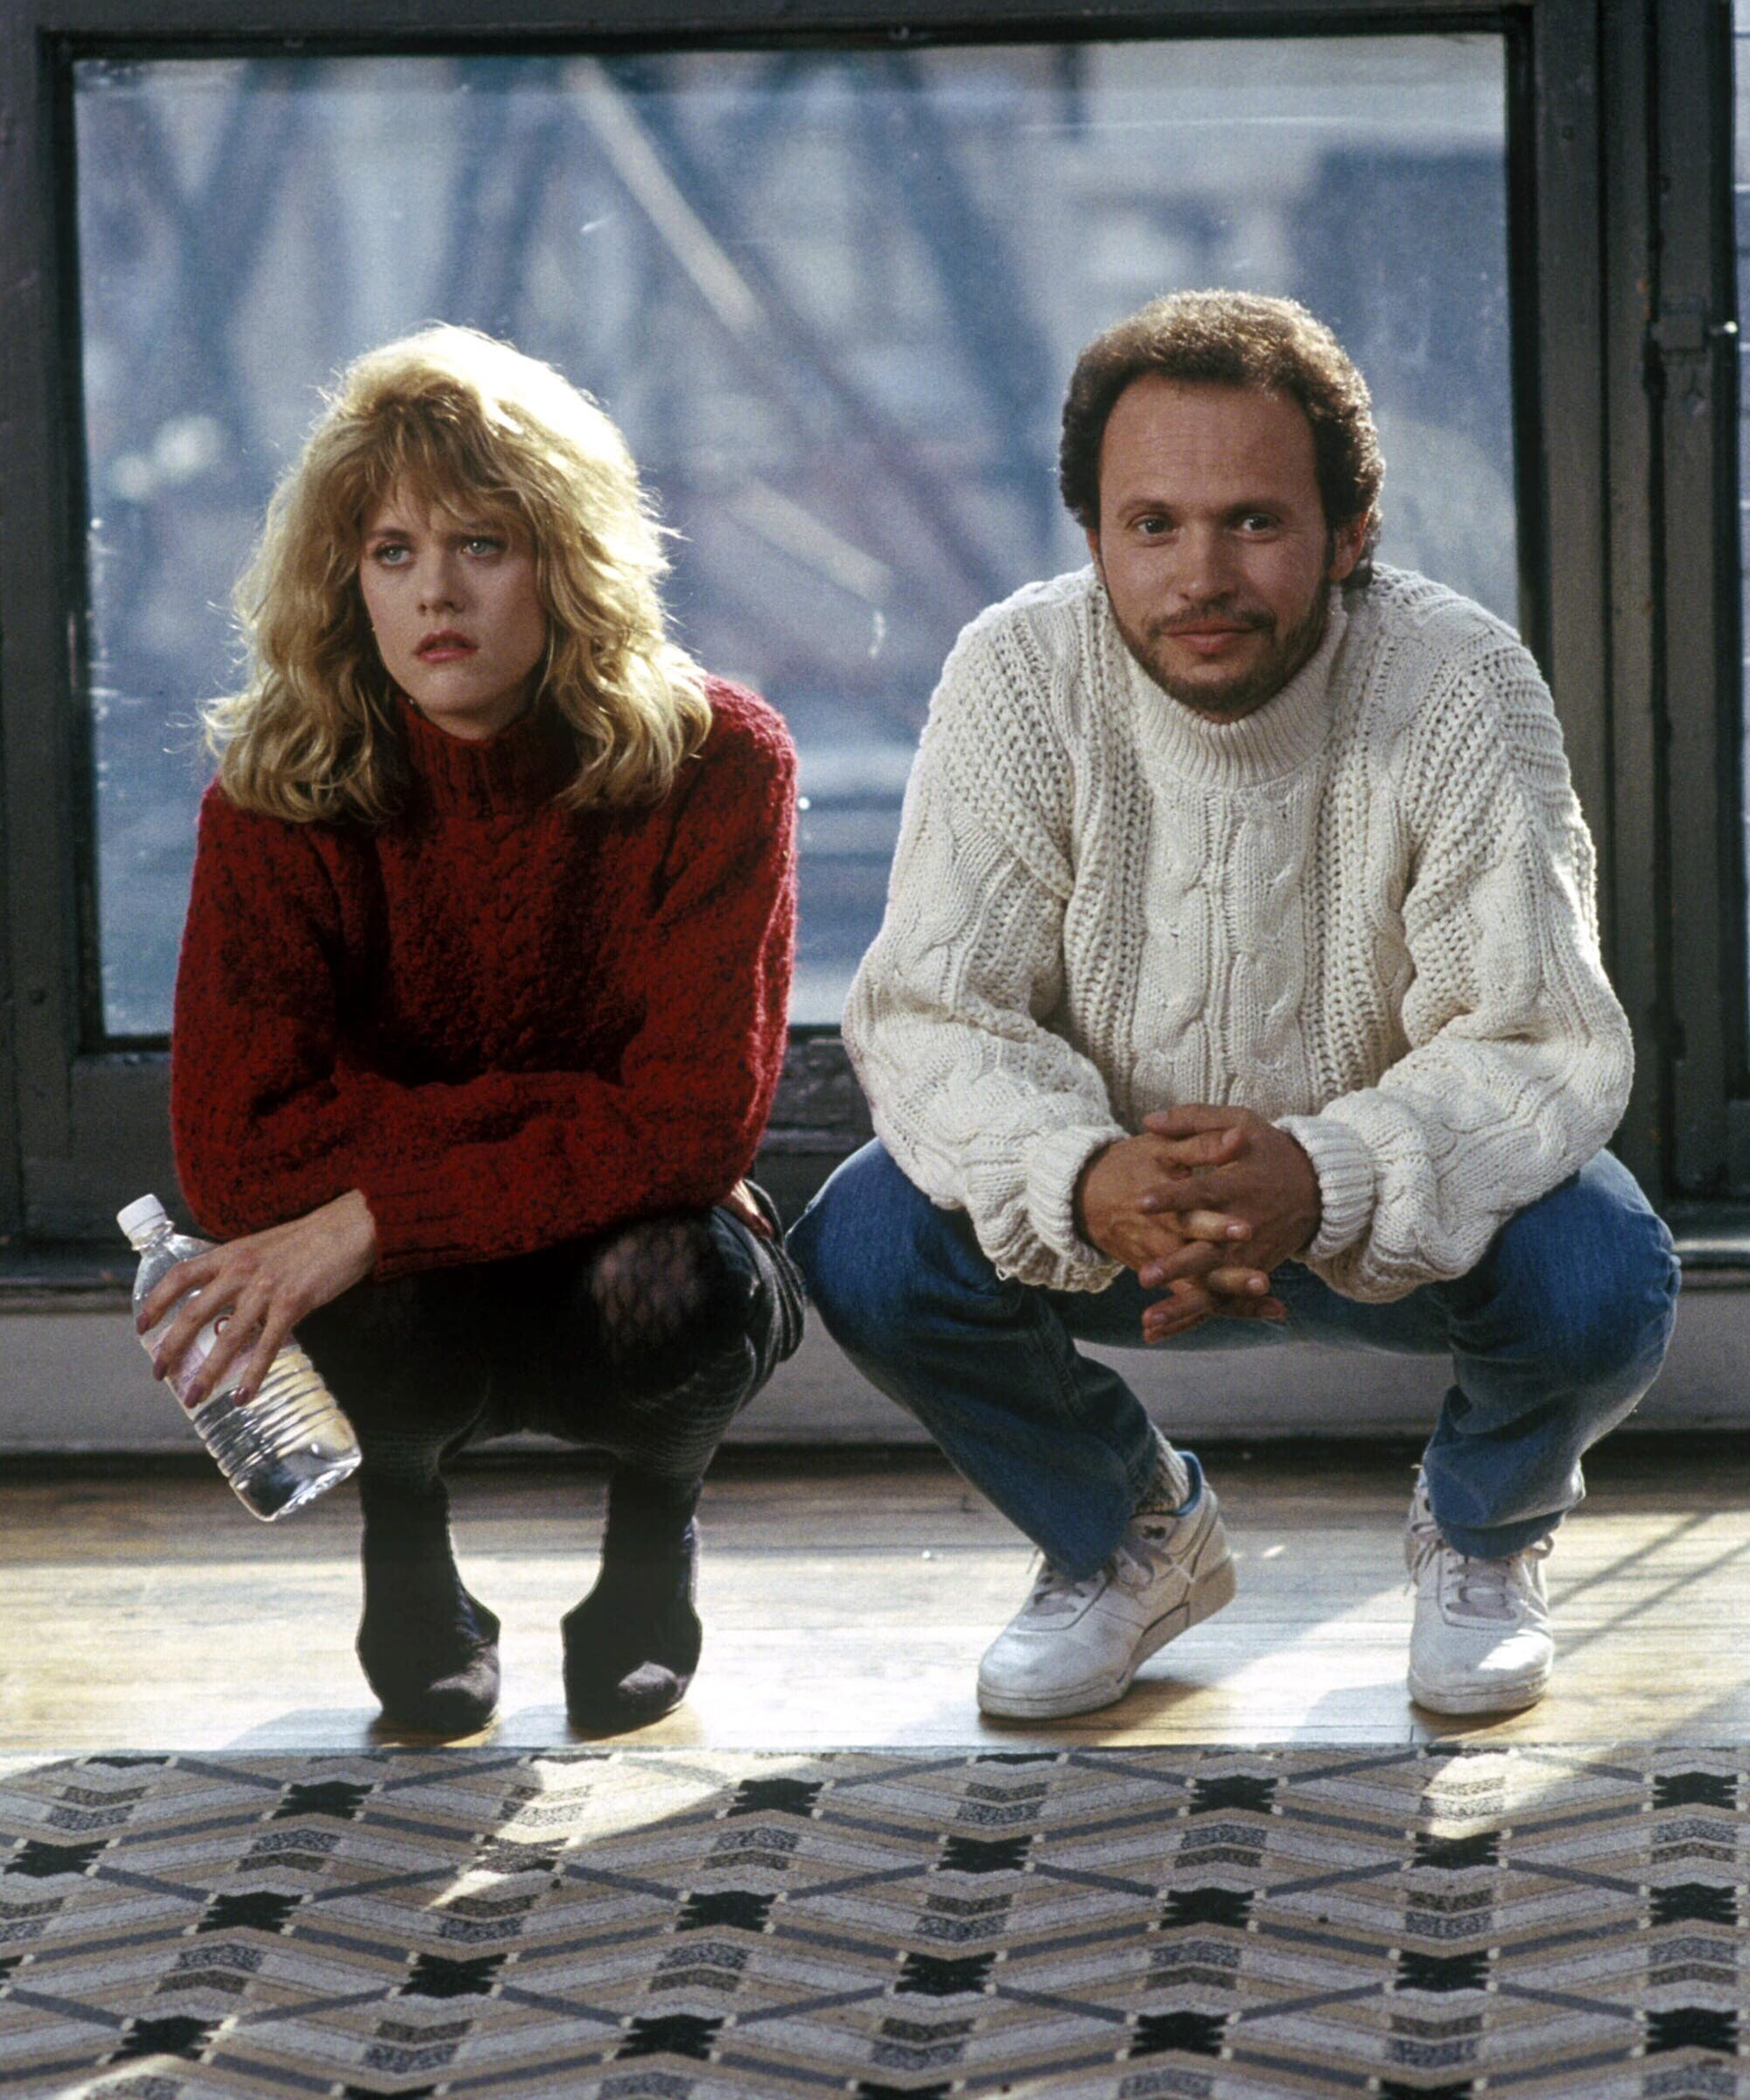 17 Things You Didn't Know About When Harry Met Sally